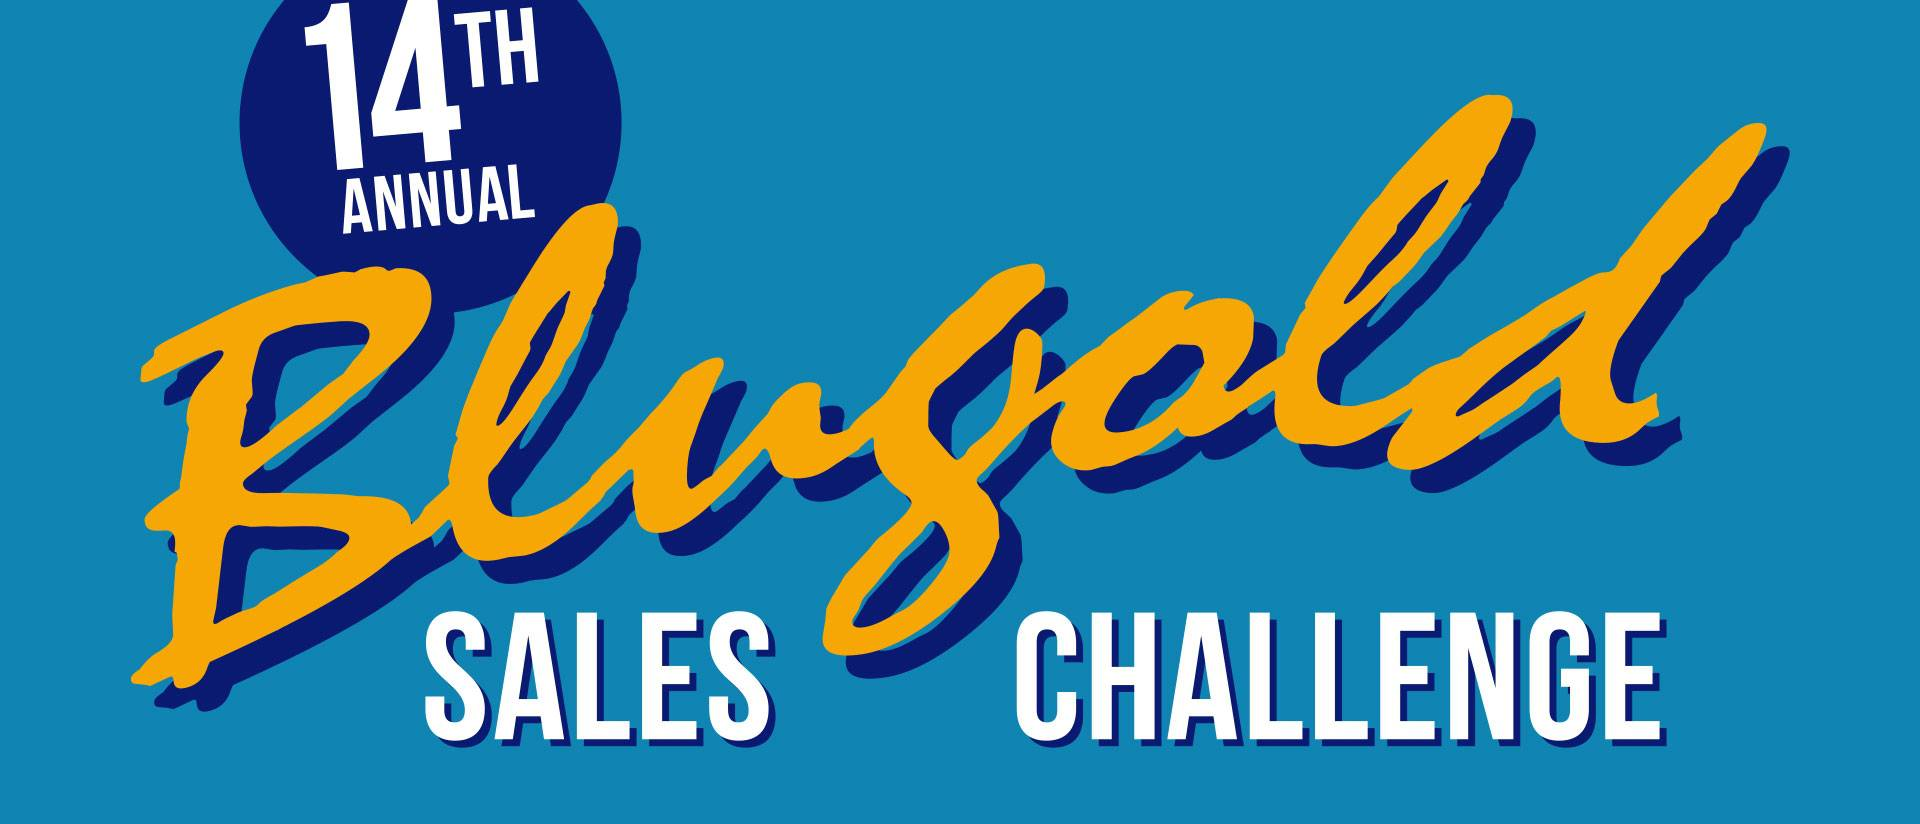 Blugold Sales Challenge graphic